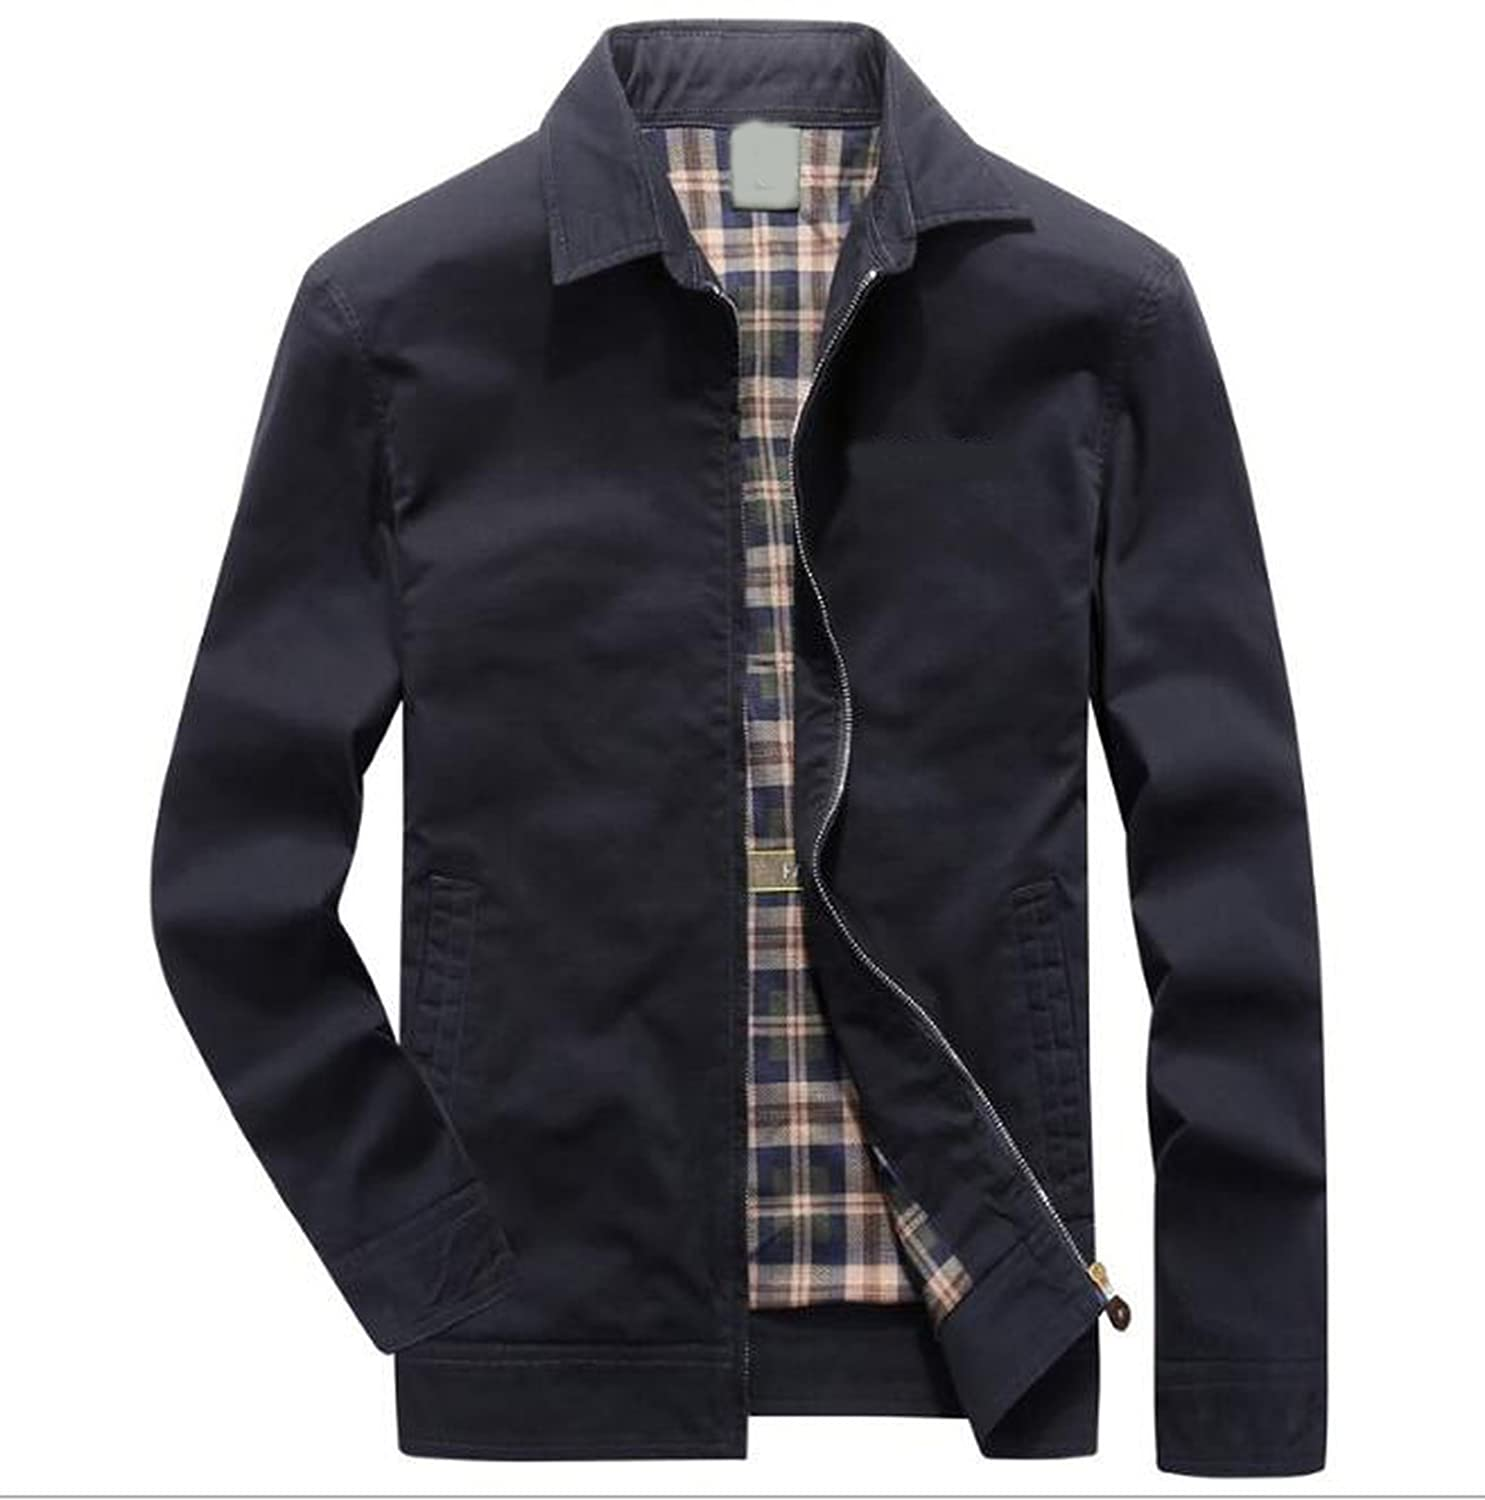 Huainsta Summer Turn Down Collar Solid Fathers Jacket at Amazon Mens Clothing store: